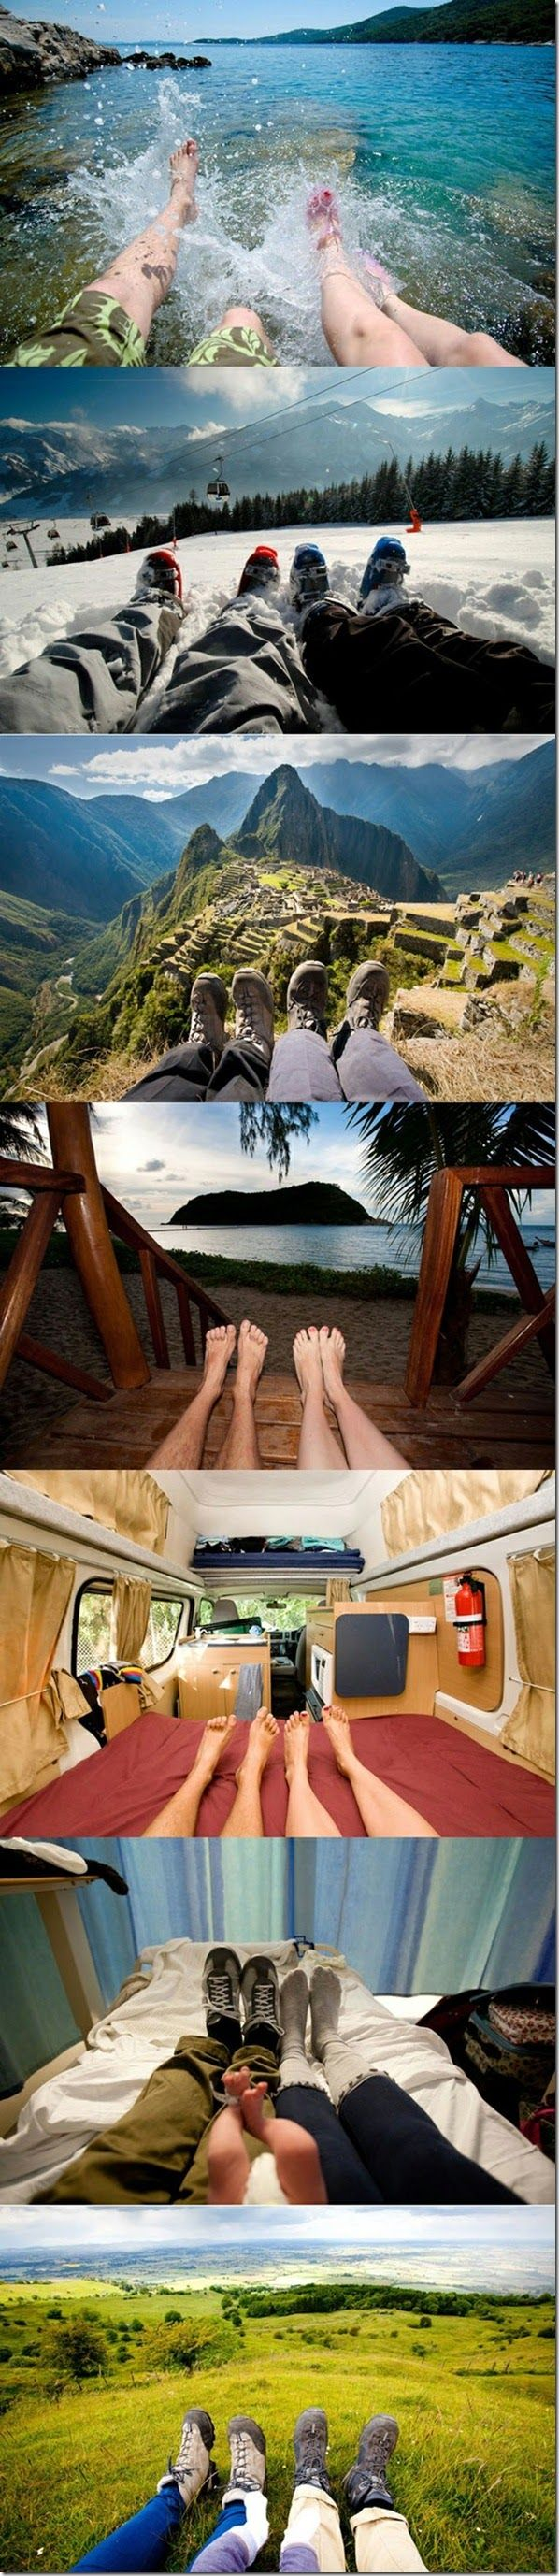 This couple takes a picture of their feet wherever they travel.  Seriously, gives me an idea of something we've got to start doing!